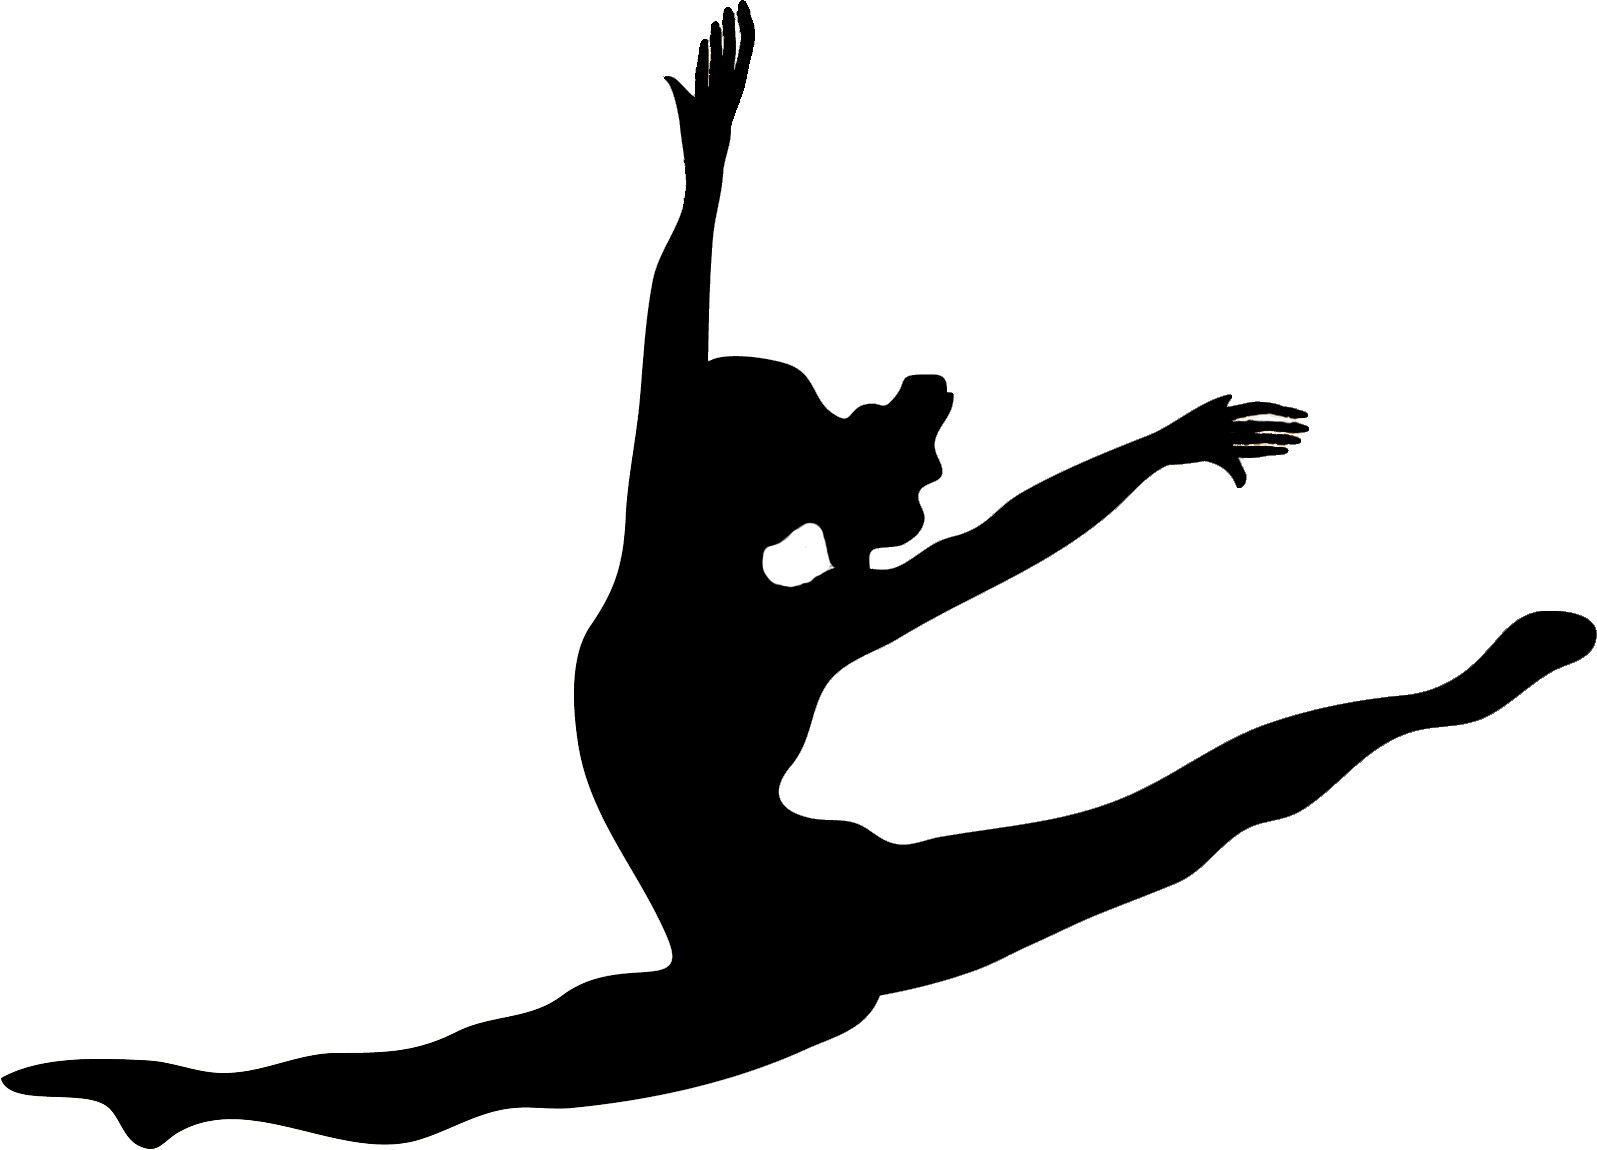 gymnastics clipart silhouette at getdrawings com free for personal rh getdrawings com gymnastics clipart png gymnastics clipart silhouette